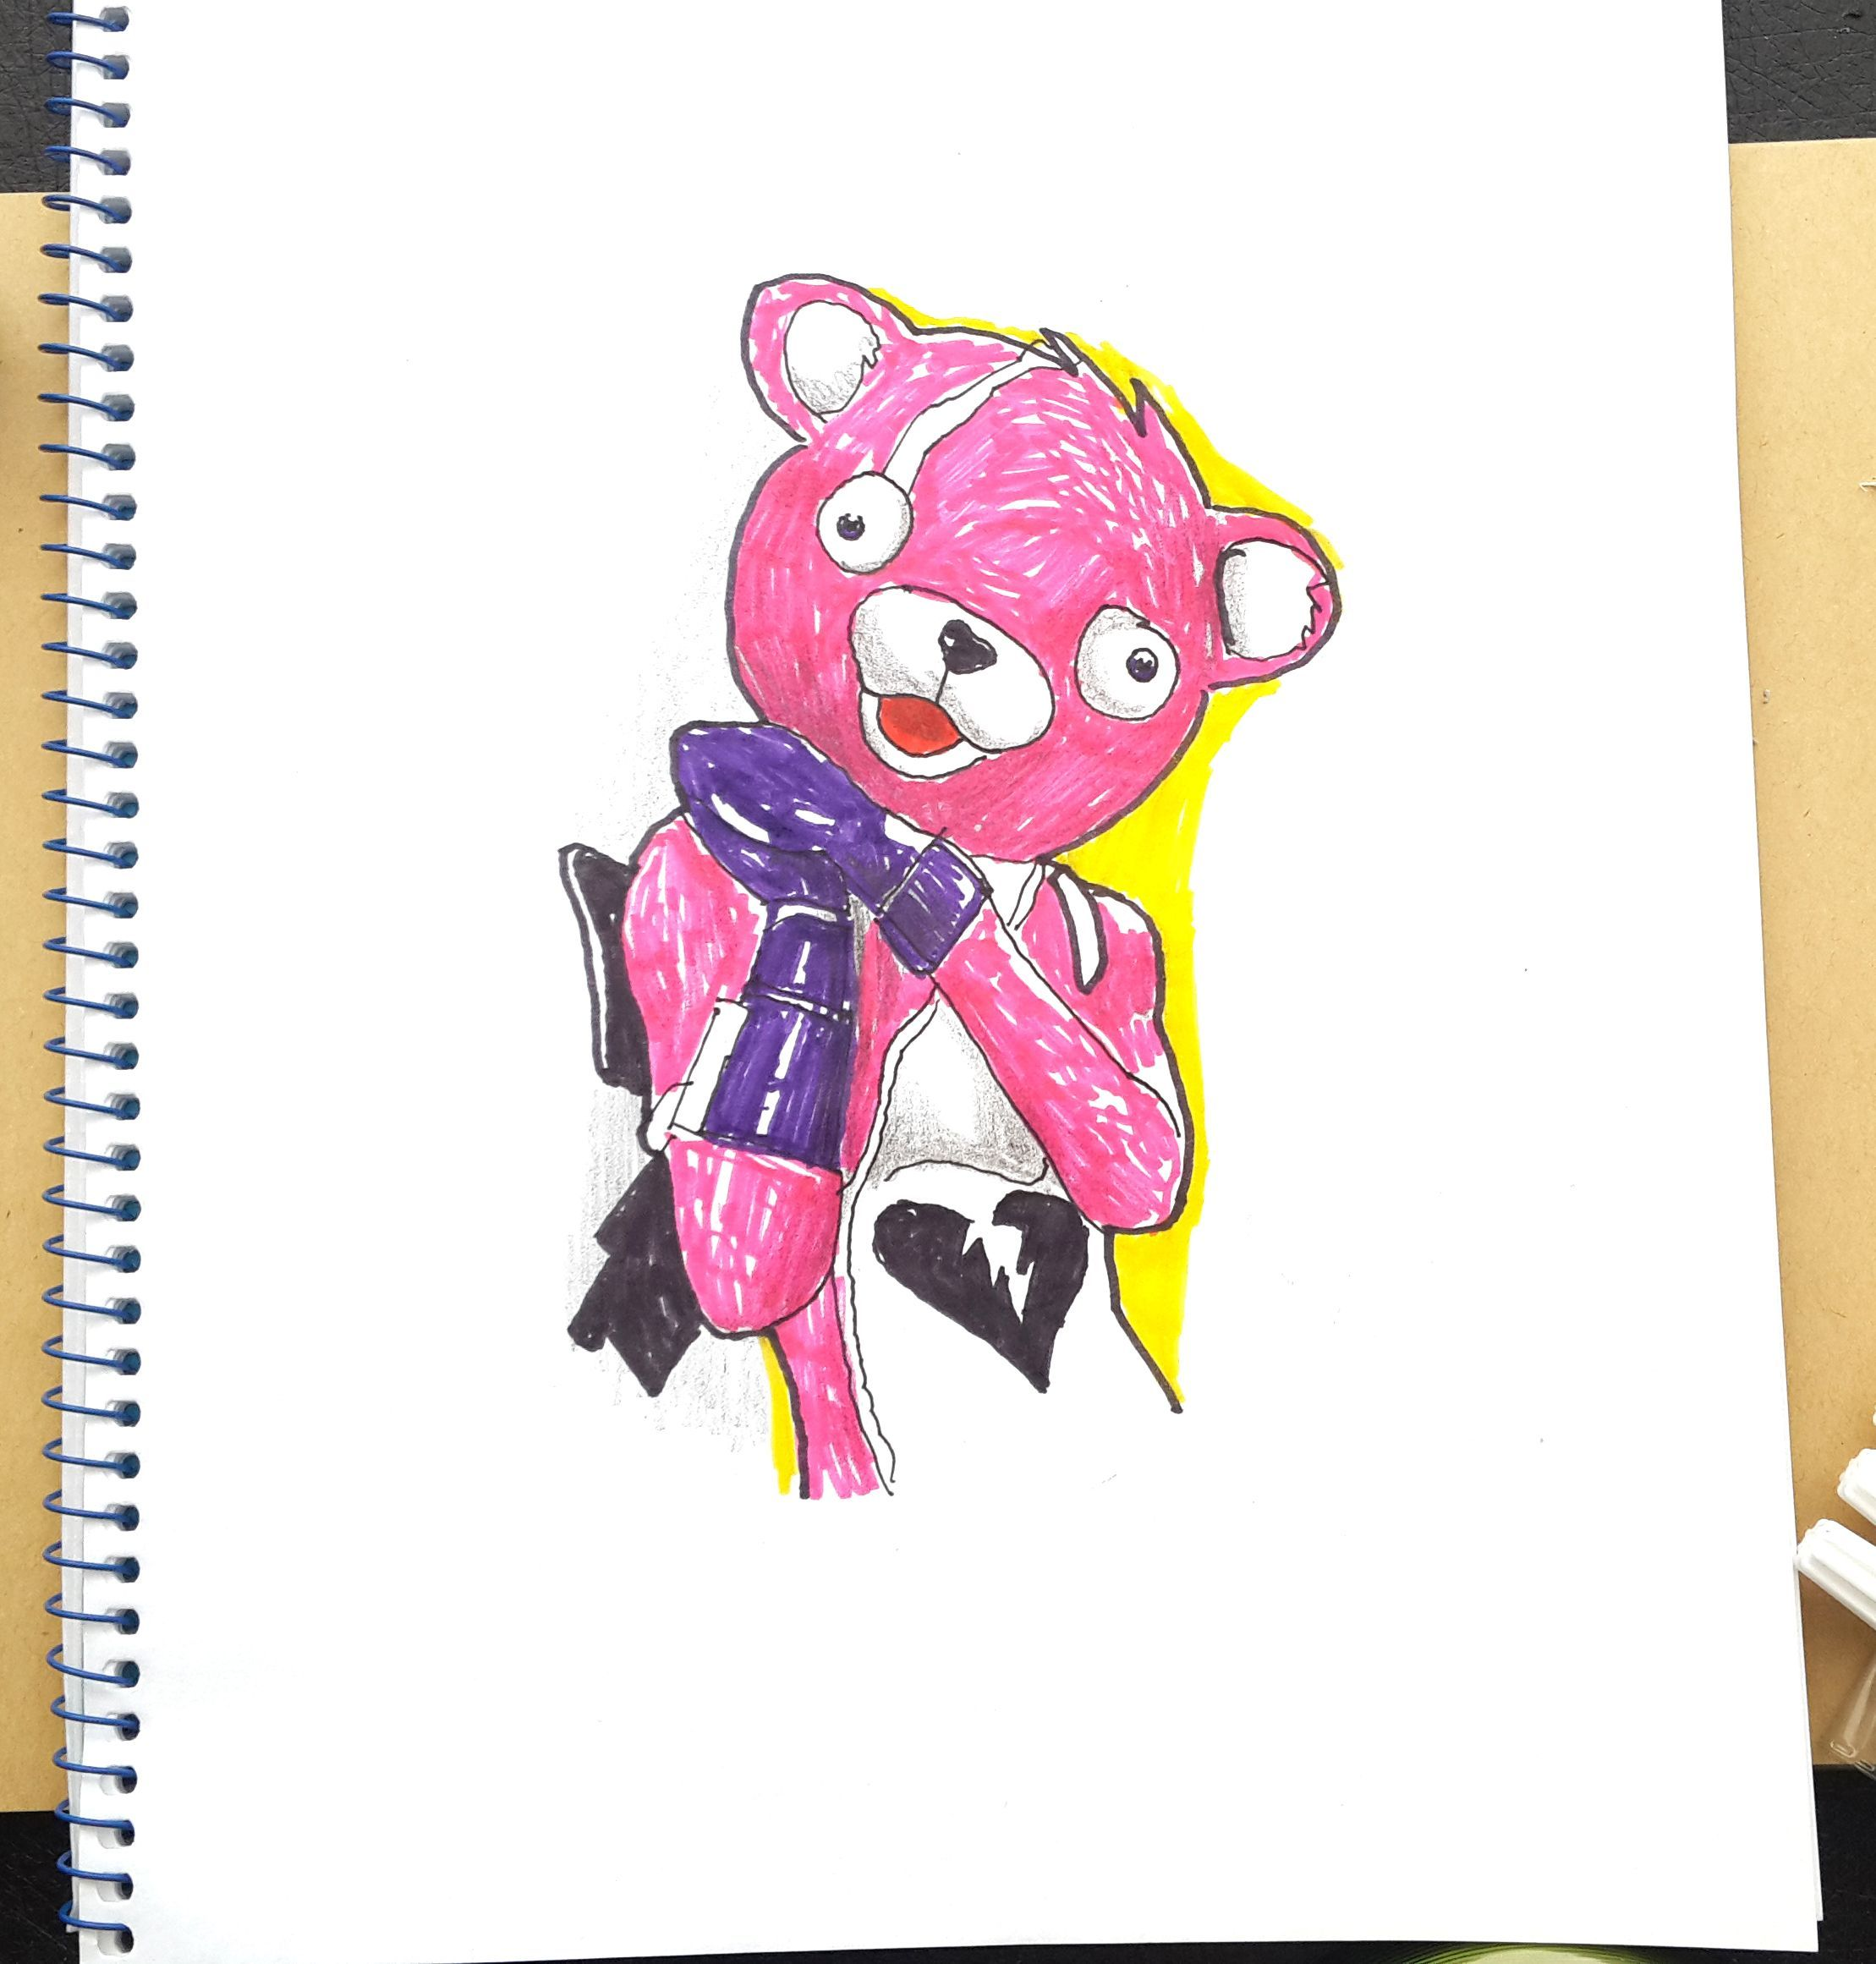 Pink bear fortnite how to draw cuddle team leader battle royal step by step easy hd fortnite character how to draw art tutorial draw eskiz